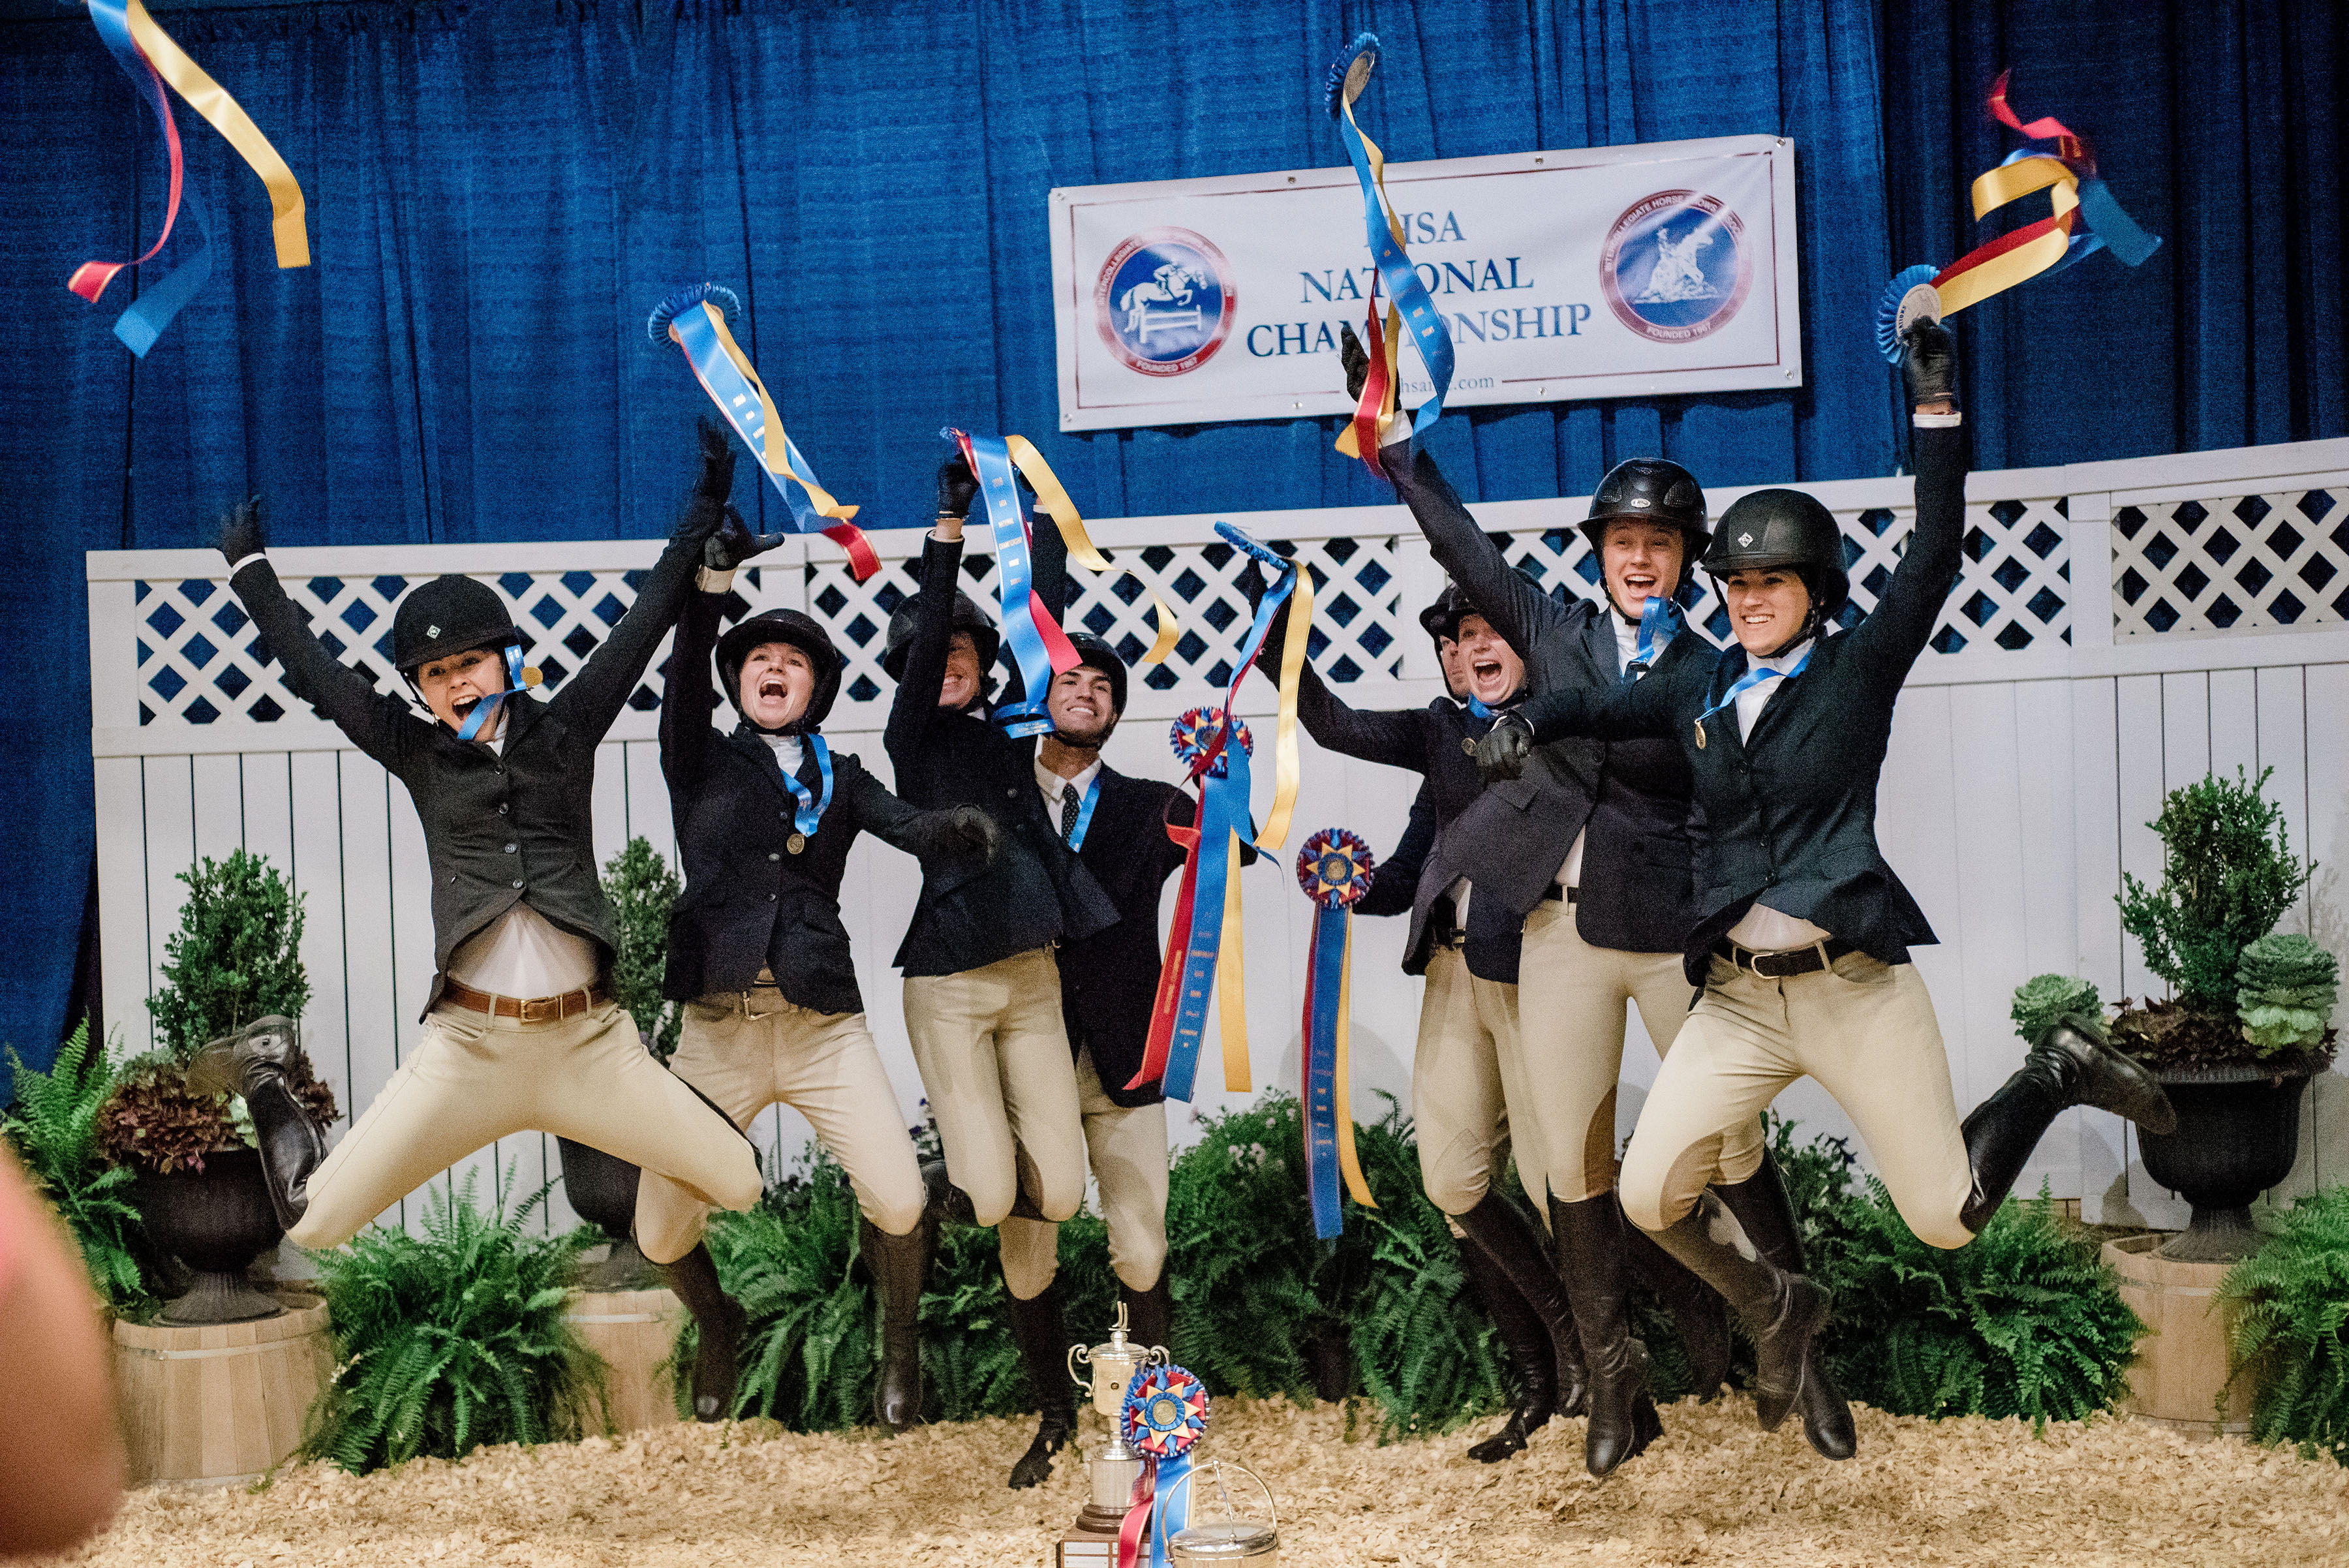 Scad Equestrian Team Conquers Ihsa National Championship